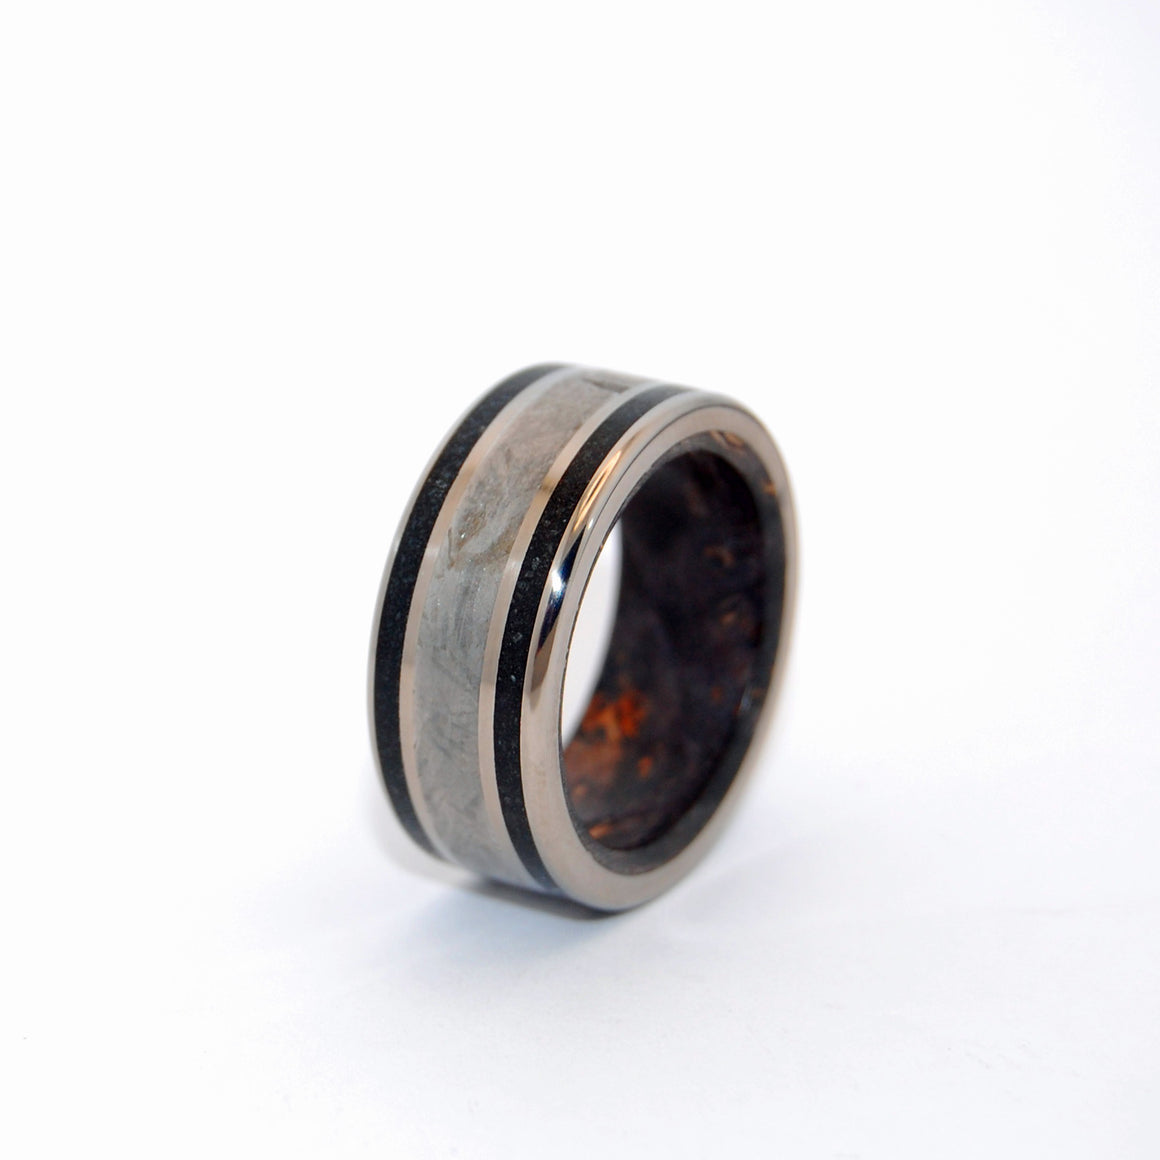 Men's Wedding Rings - Handcrafted Meteorite and Titanium Ring | THE RESOLUTE